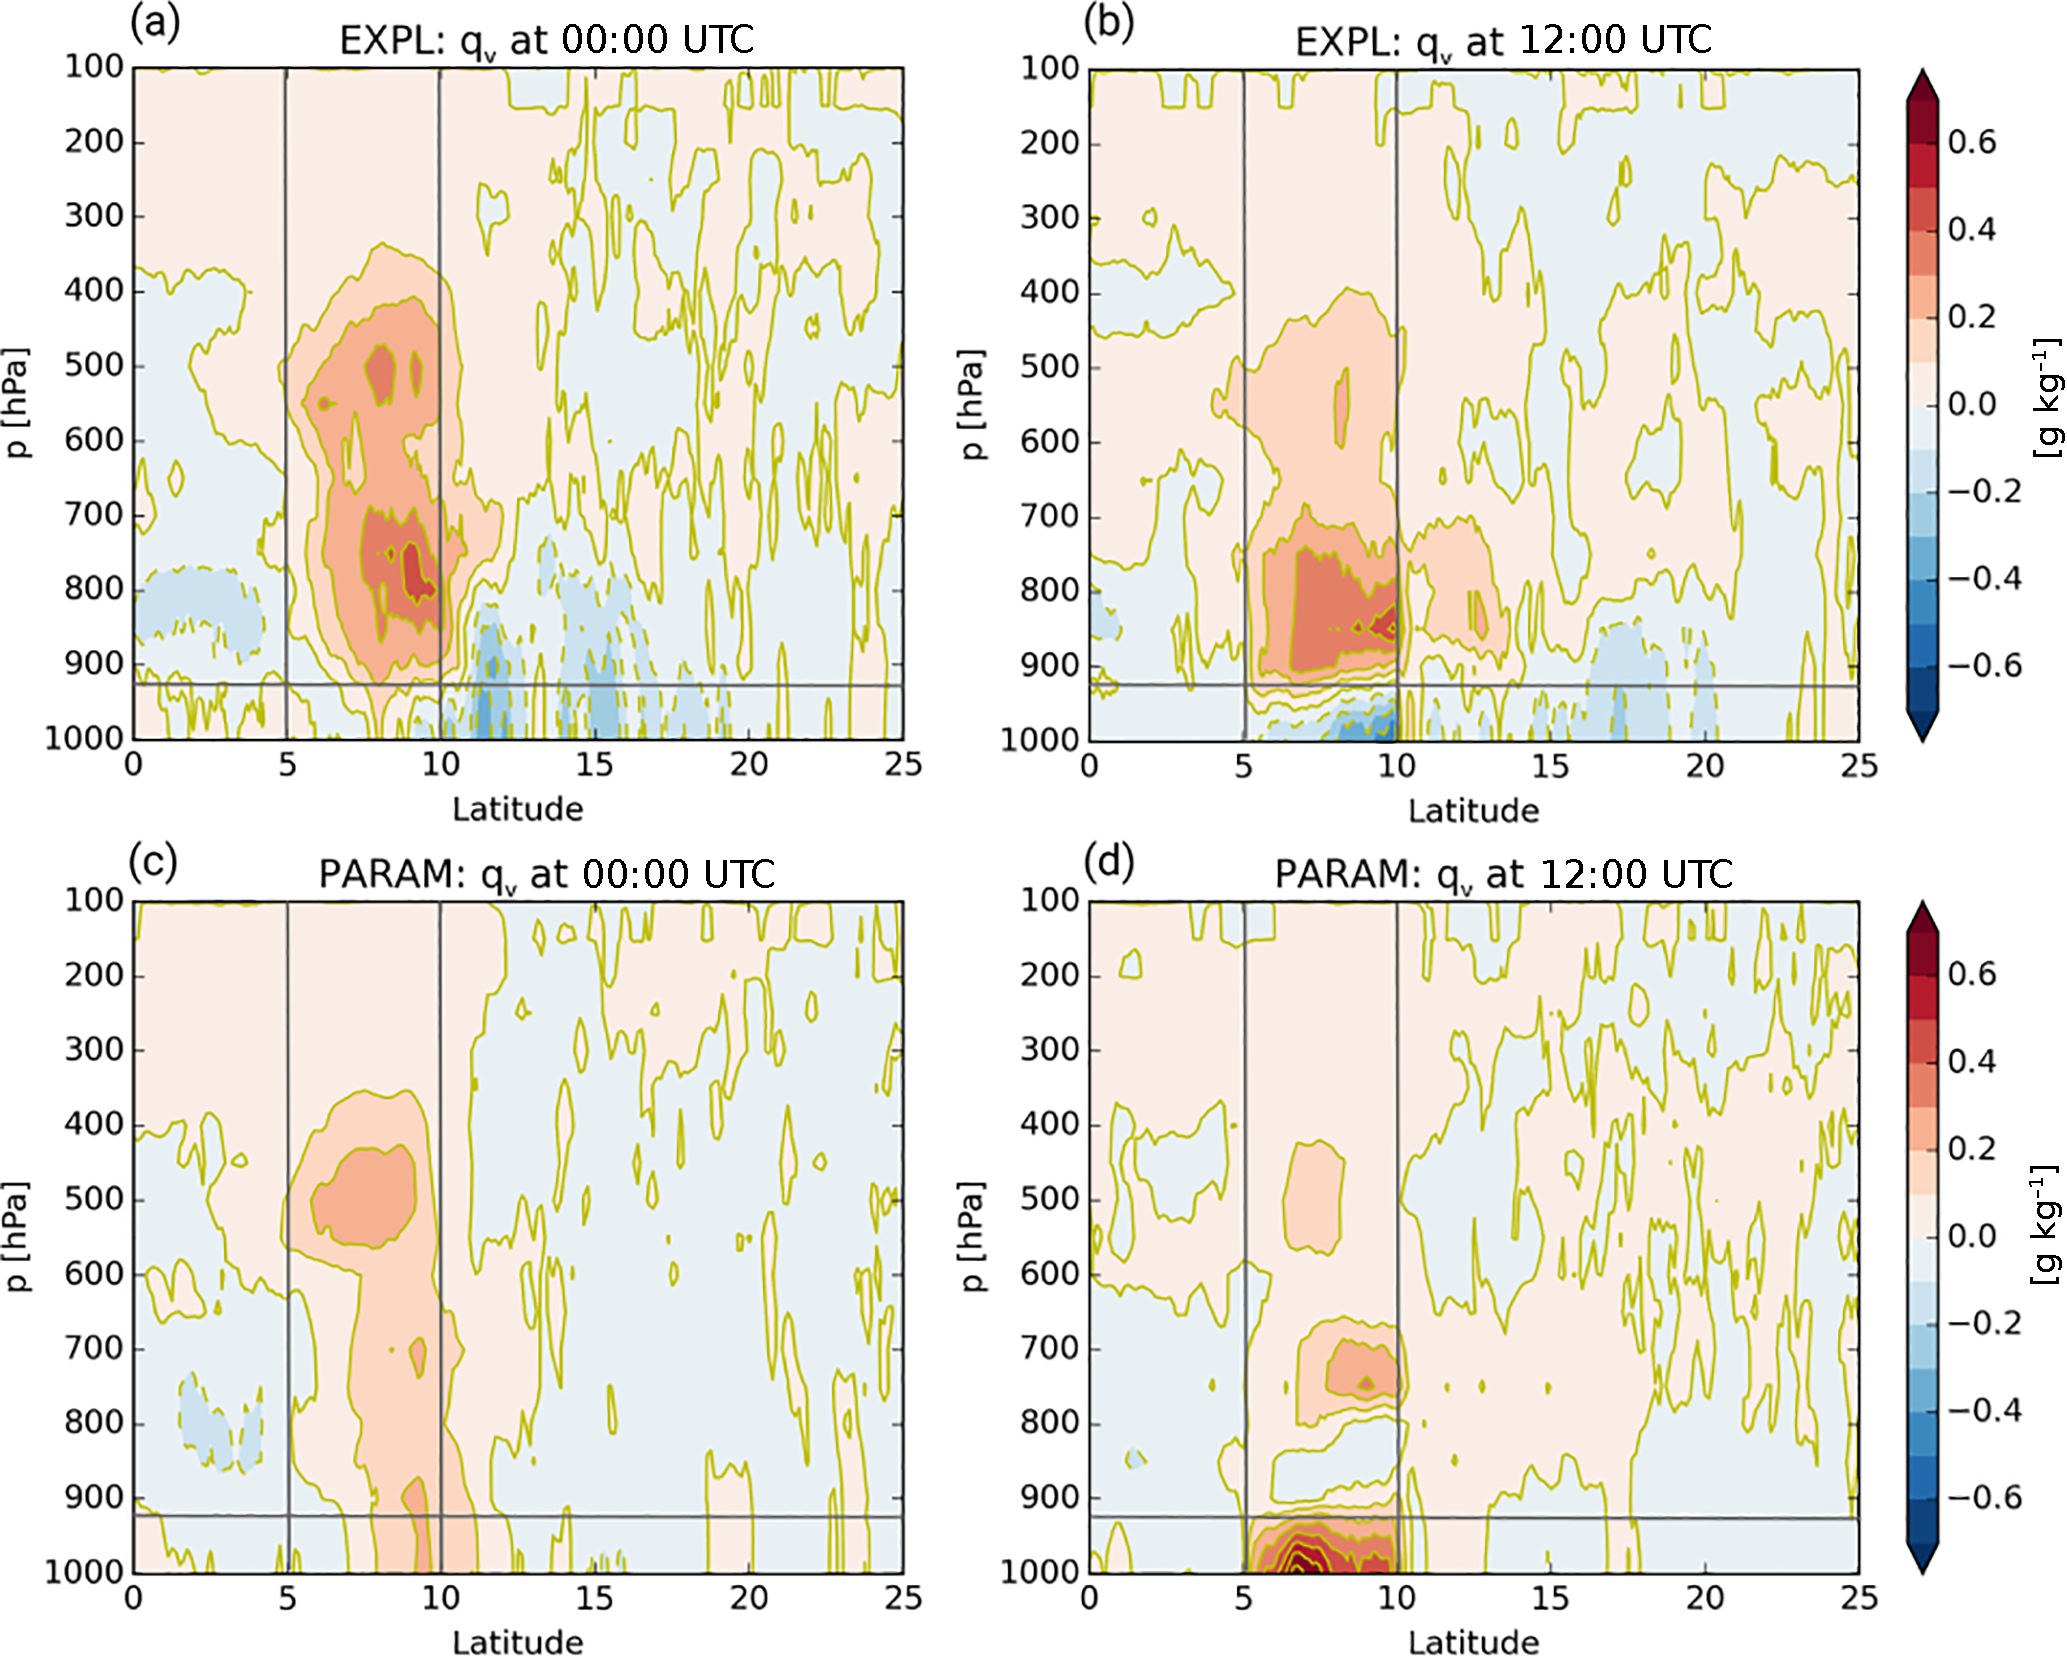 ACP - The role of low-level clouds in the West African monsoon system